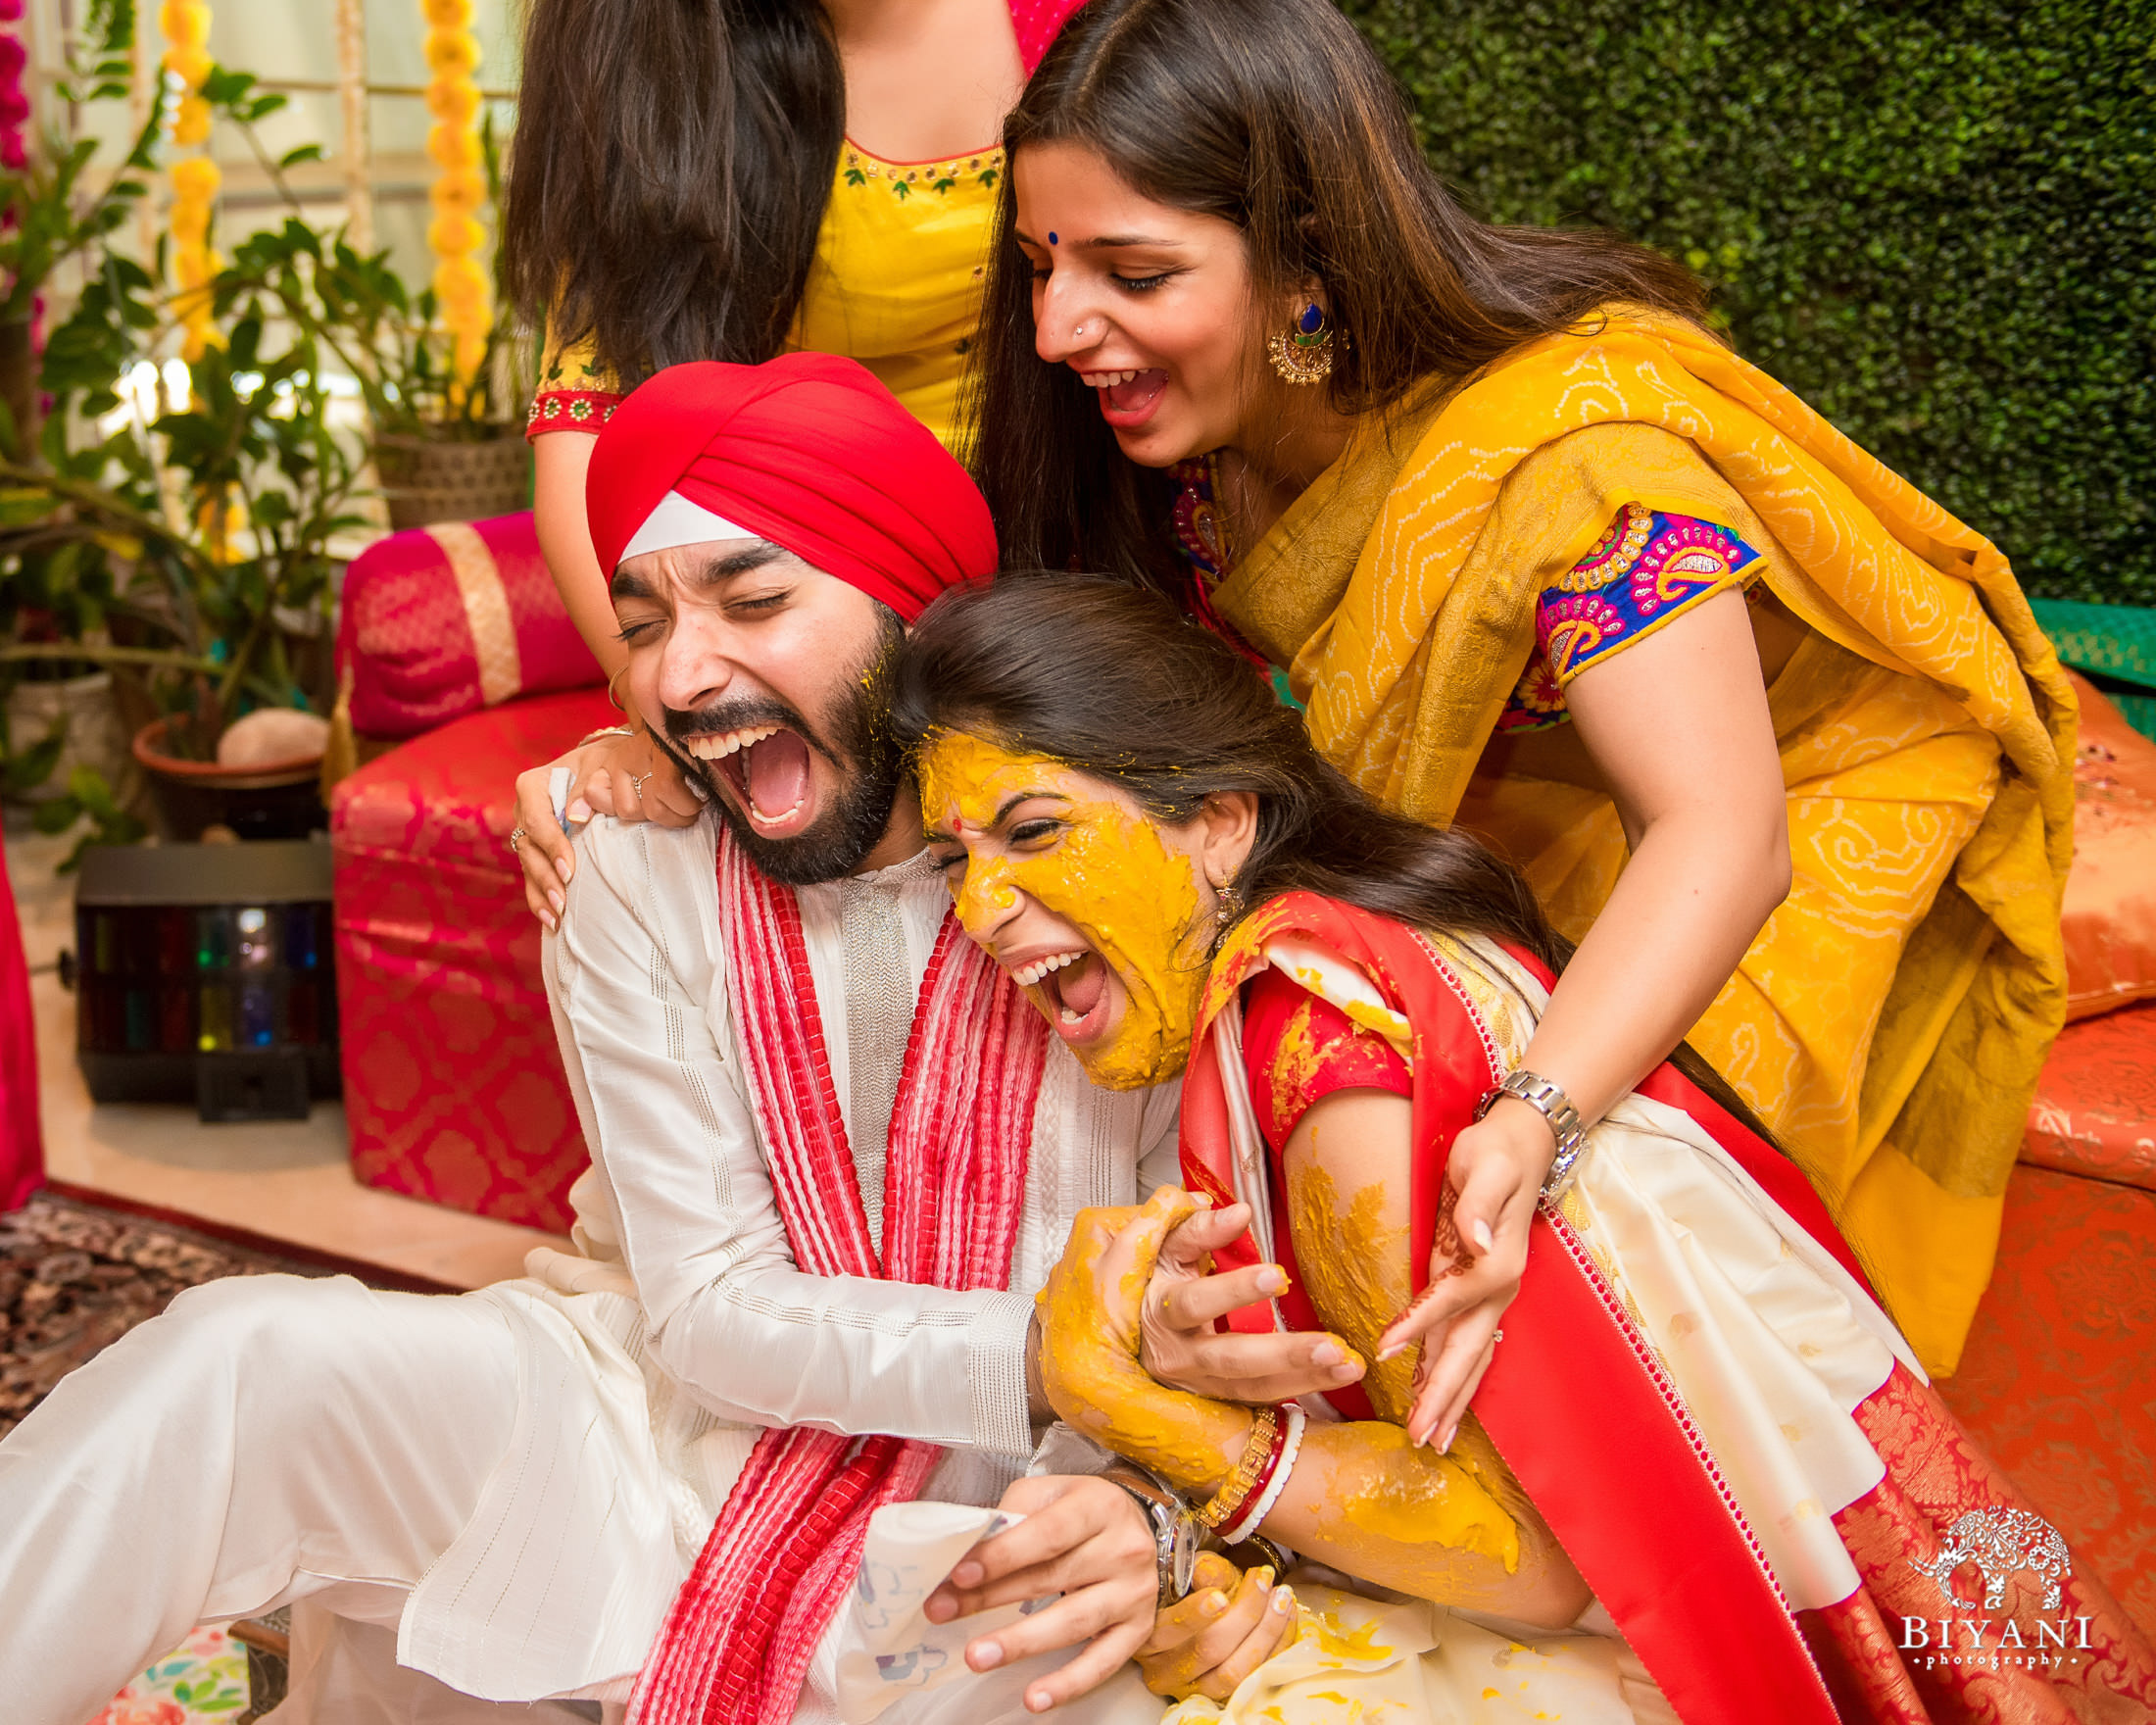 Sikh Wedding haldi ceremony